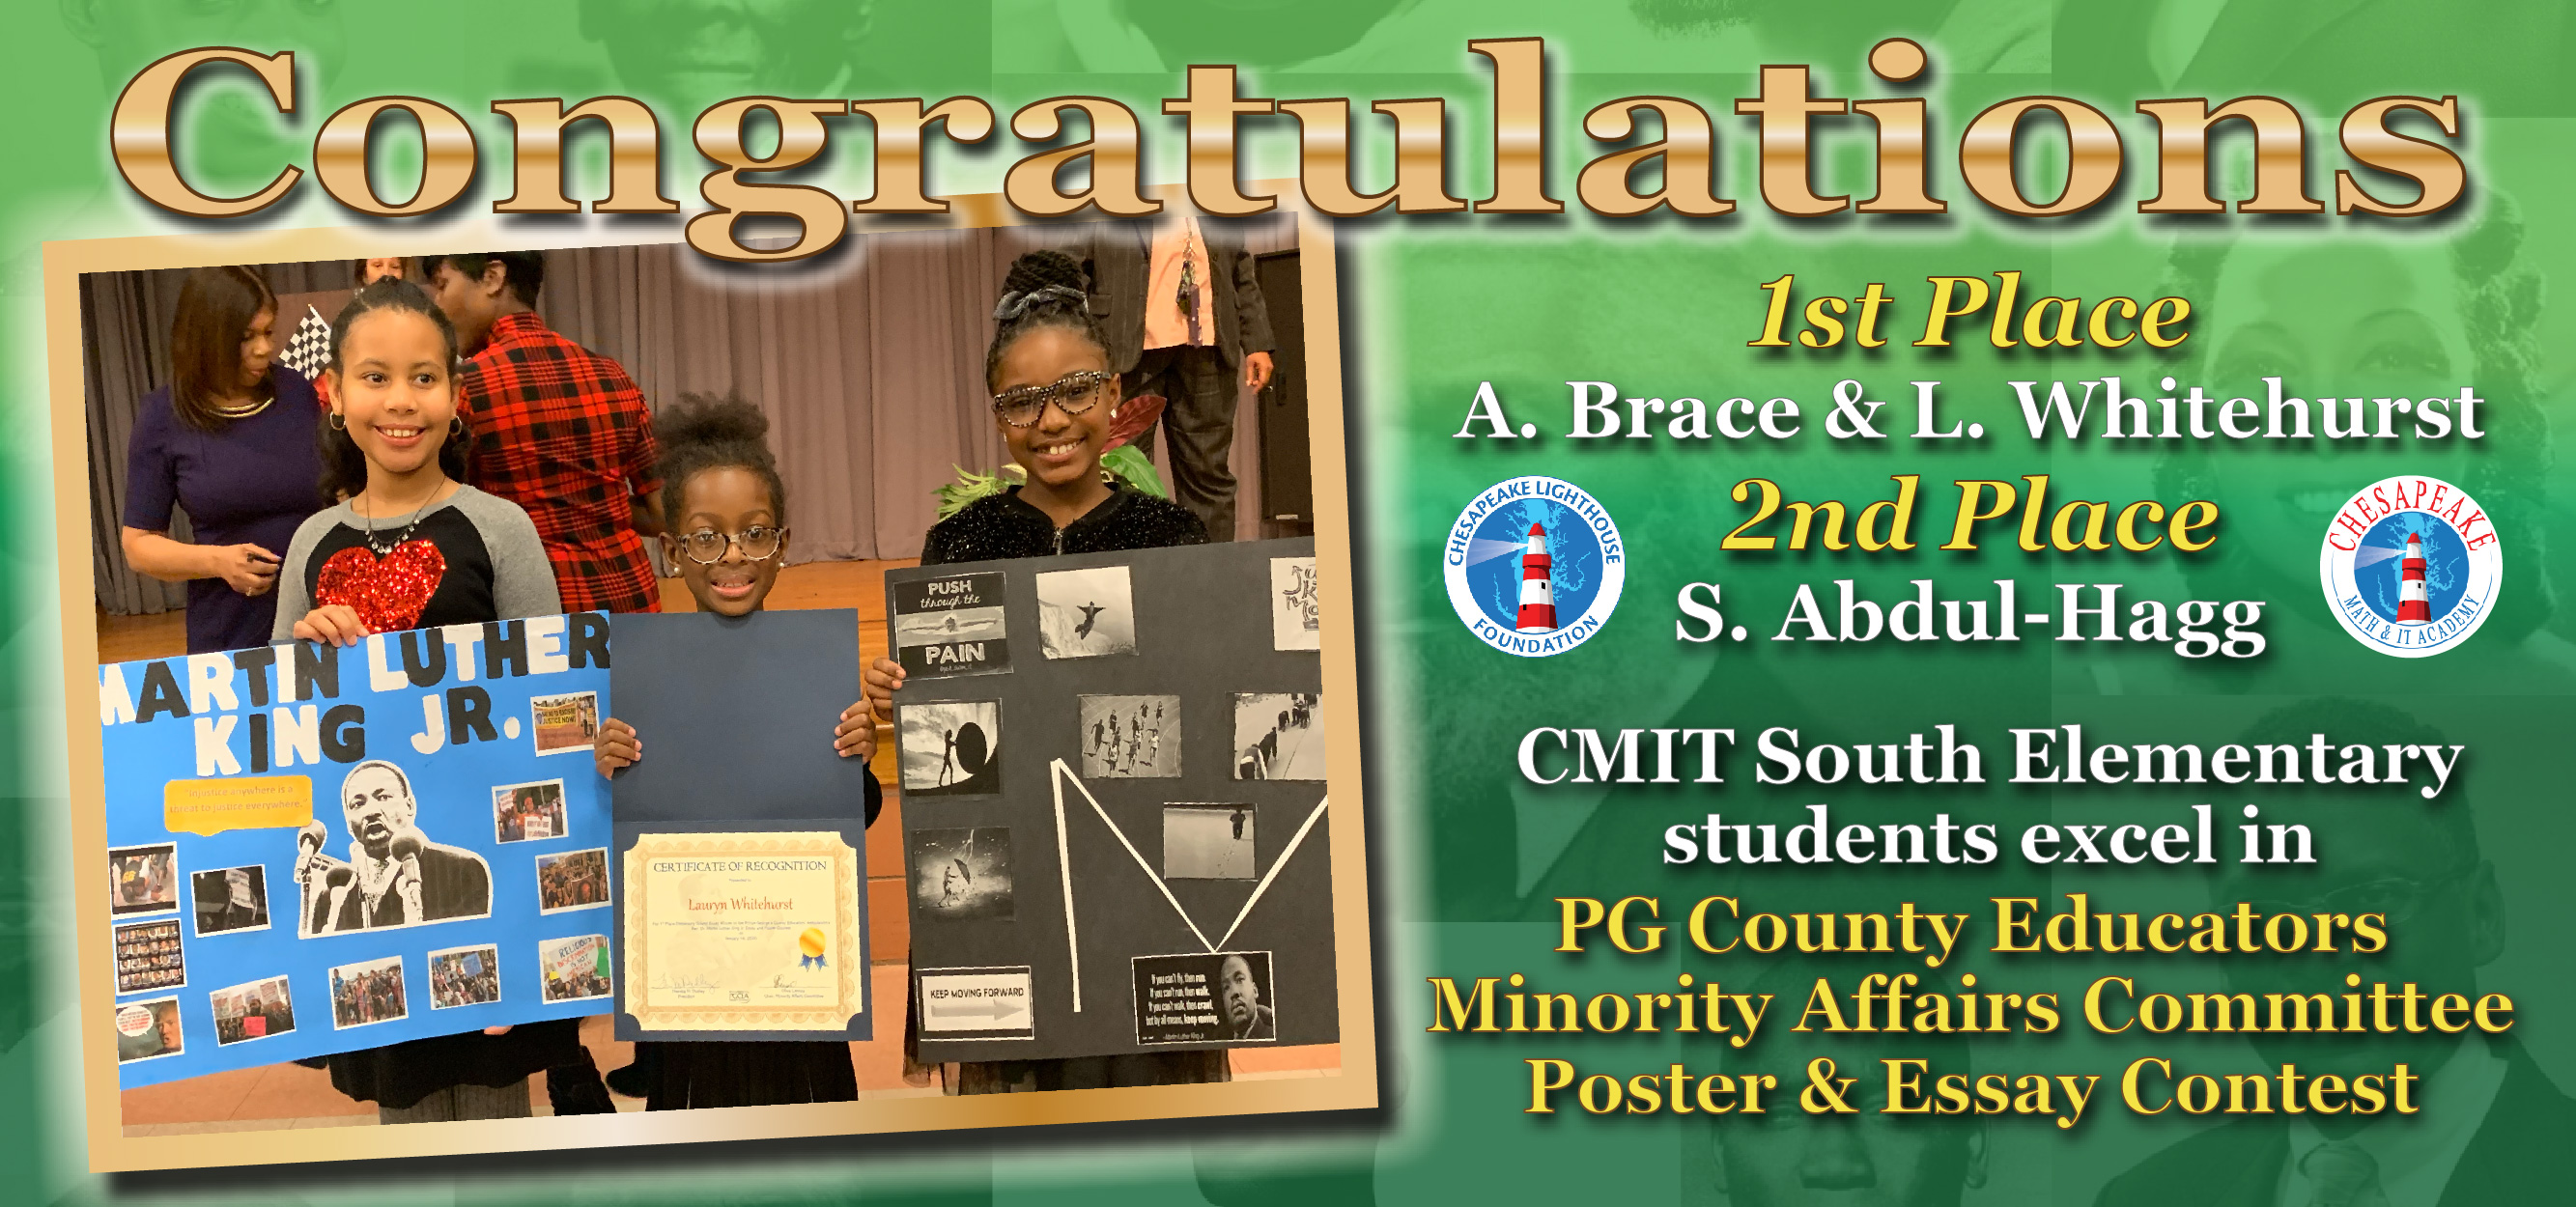 CMIT South Elementary Students Excel in PG County Educators Minority Affairs Committee Poster & Essay Contest